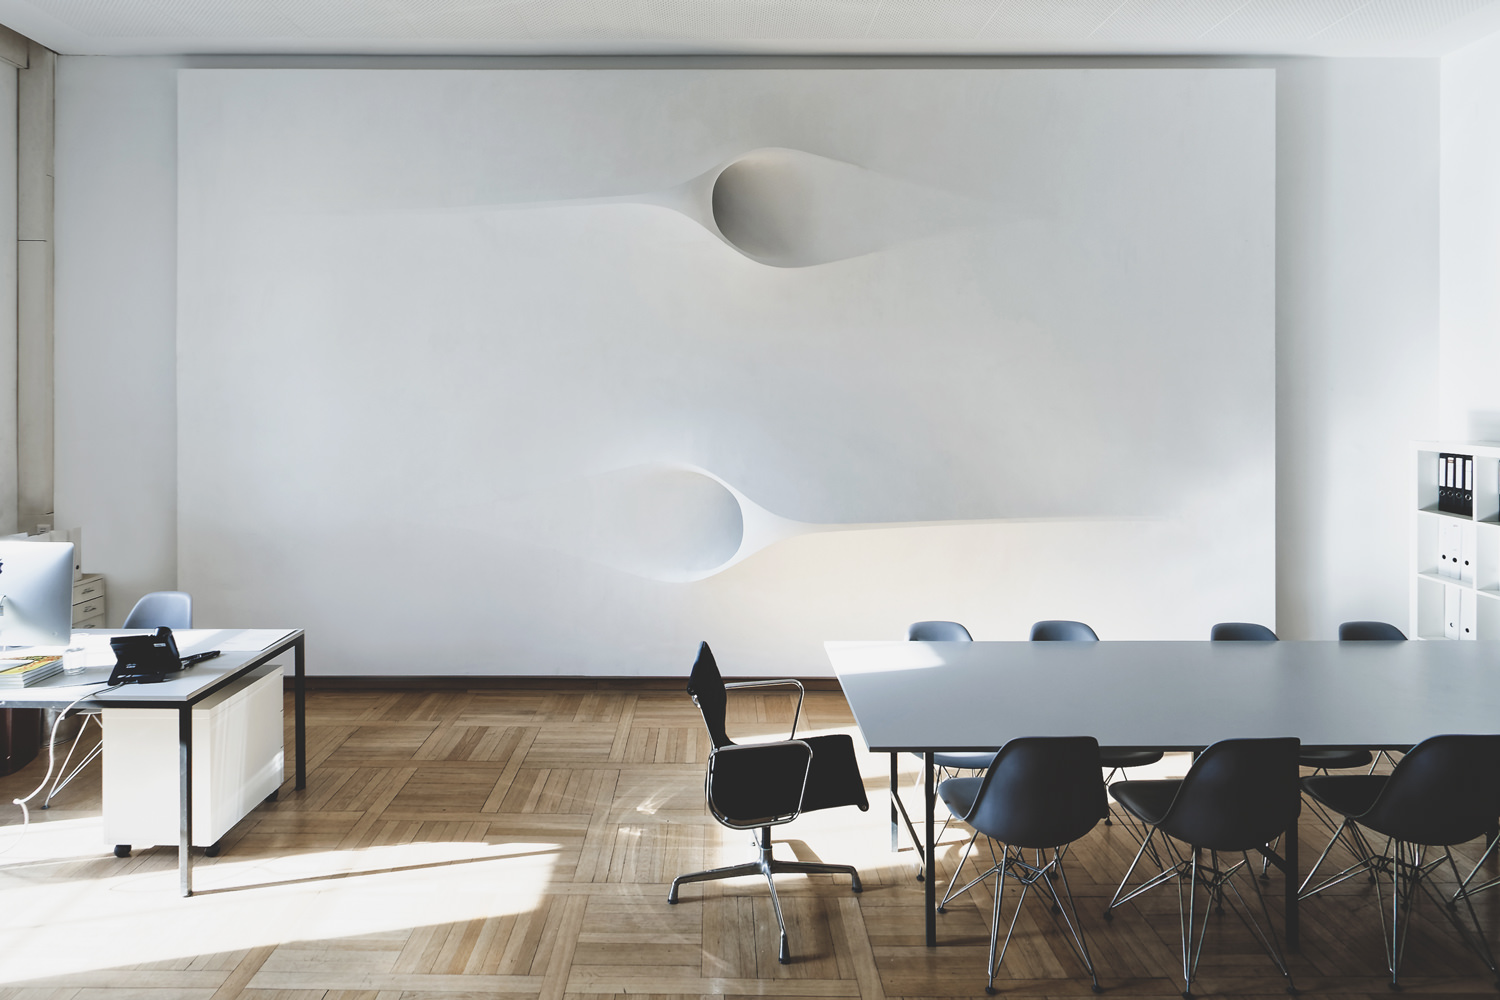 projector-ceiling-moh-architects-joerg-hugo-conferencetable3.jpg